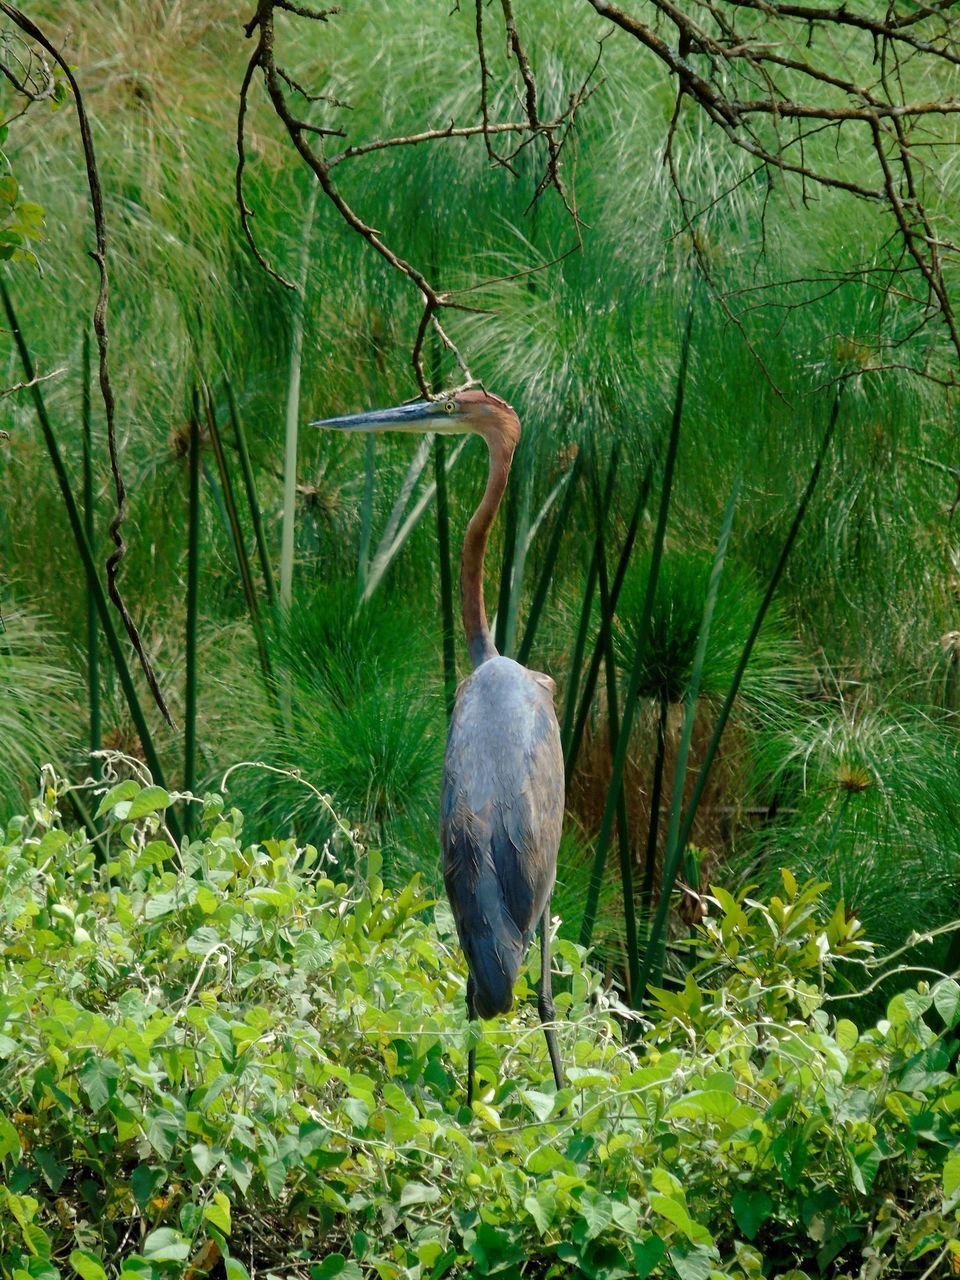 animal themes, plant, bird, animal, vertebrate, one animal, animal wildlife, animals in the wild, green color, tree, forest, nature, no people, growth, heron, land, day, branch, perching, outdoors